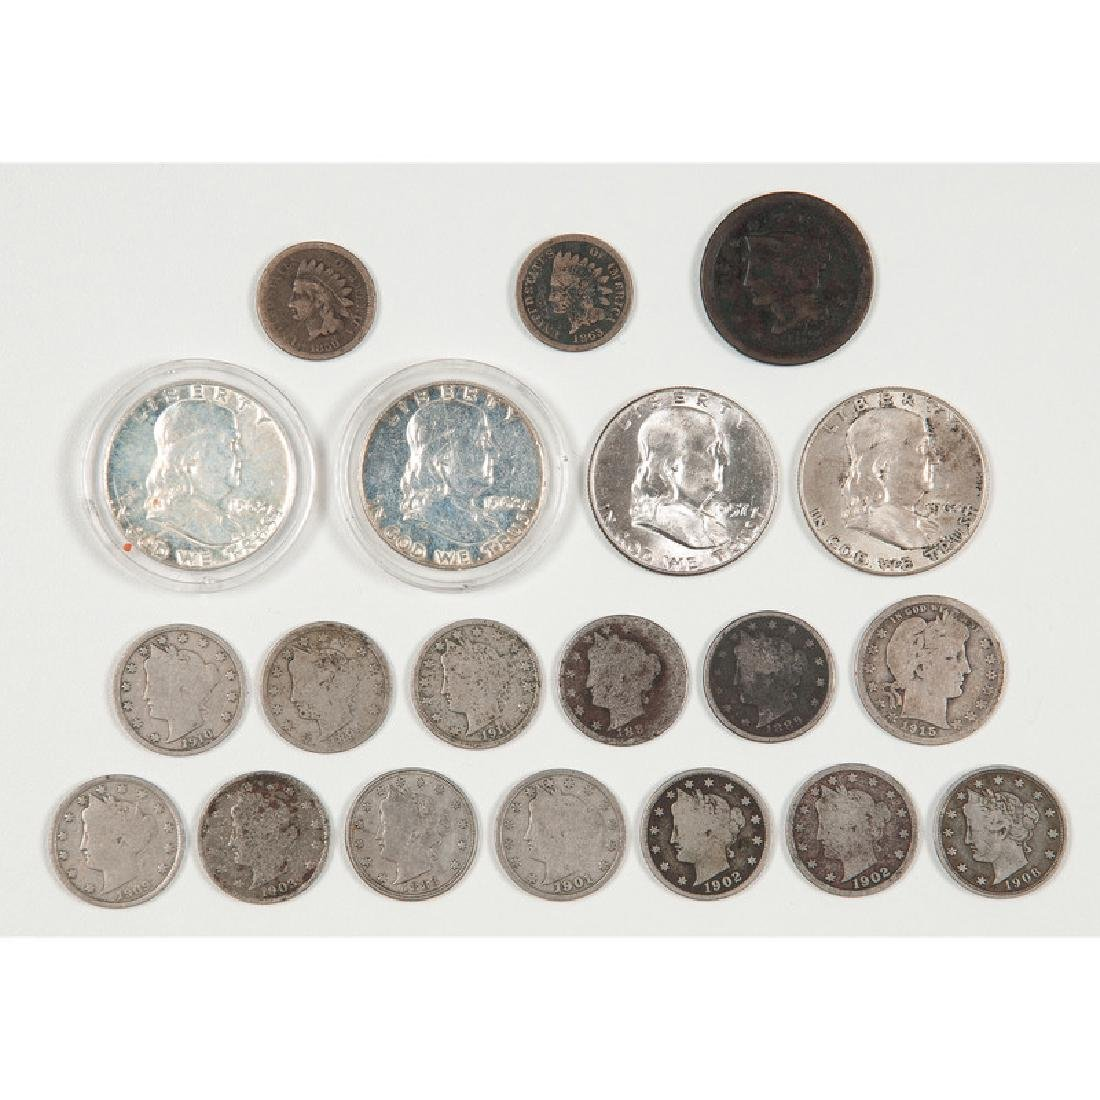 Assortment of United States Coins